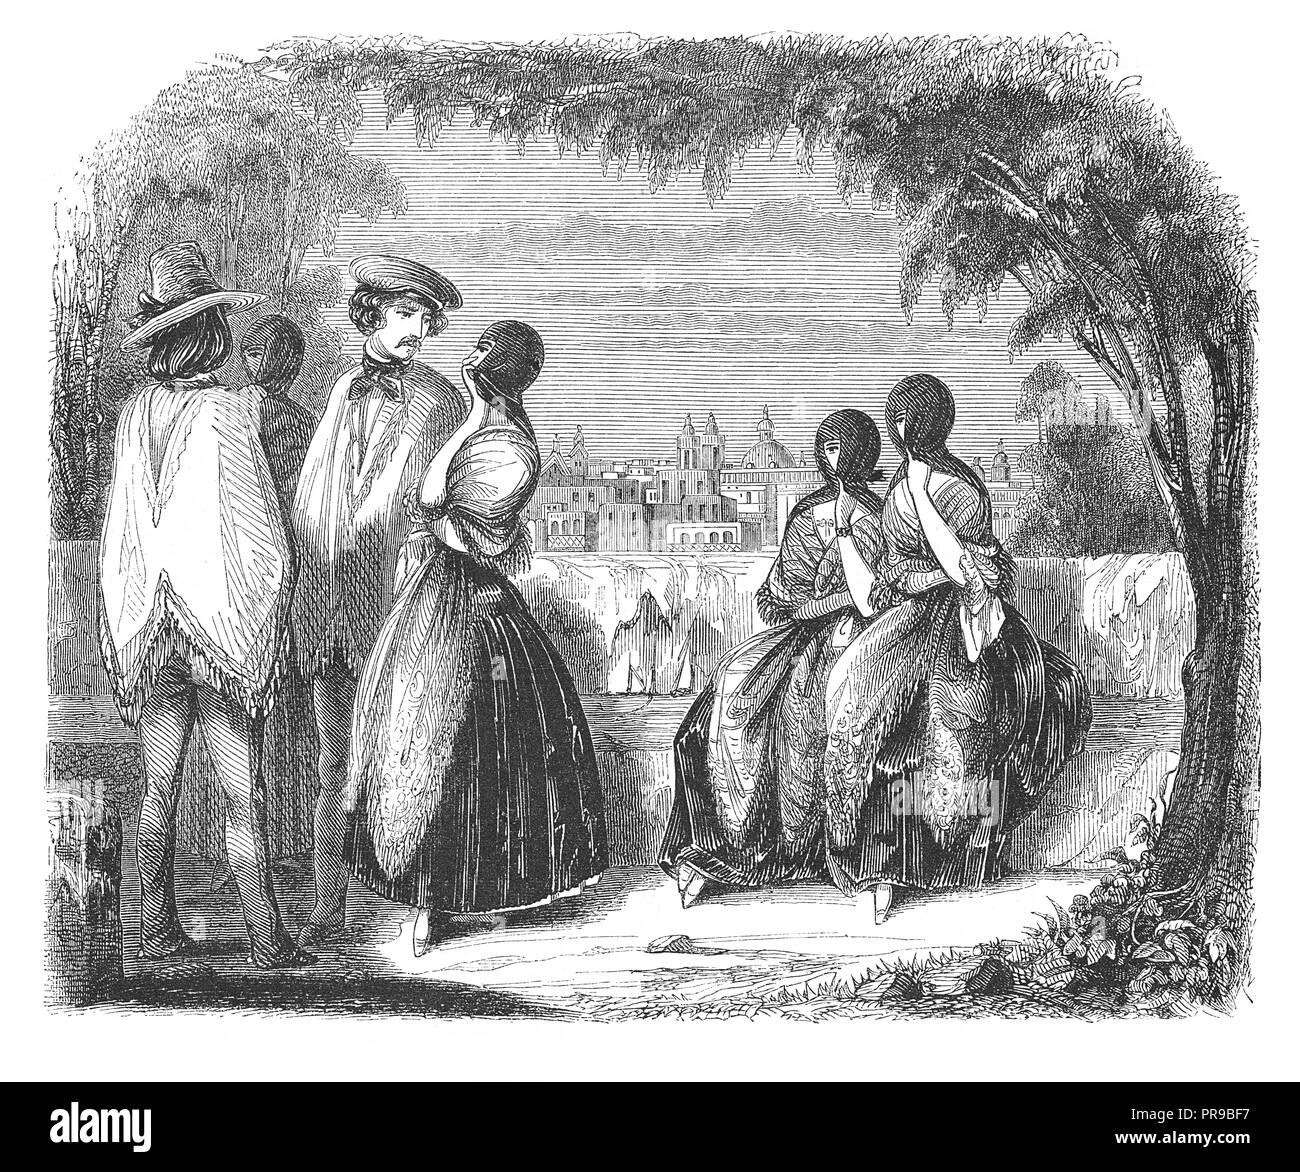 19th century illustration of traditional costumes at Lima. Drawing by Max. Radiquet. Original artwork published in Le magasin Pittoresque by M. A. Lac - Stock Image